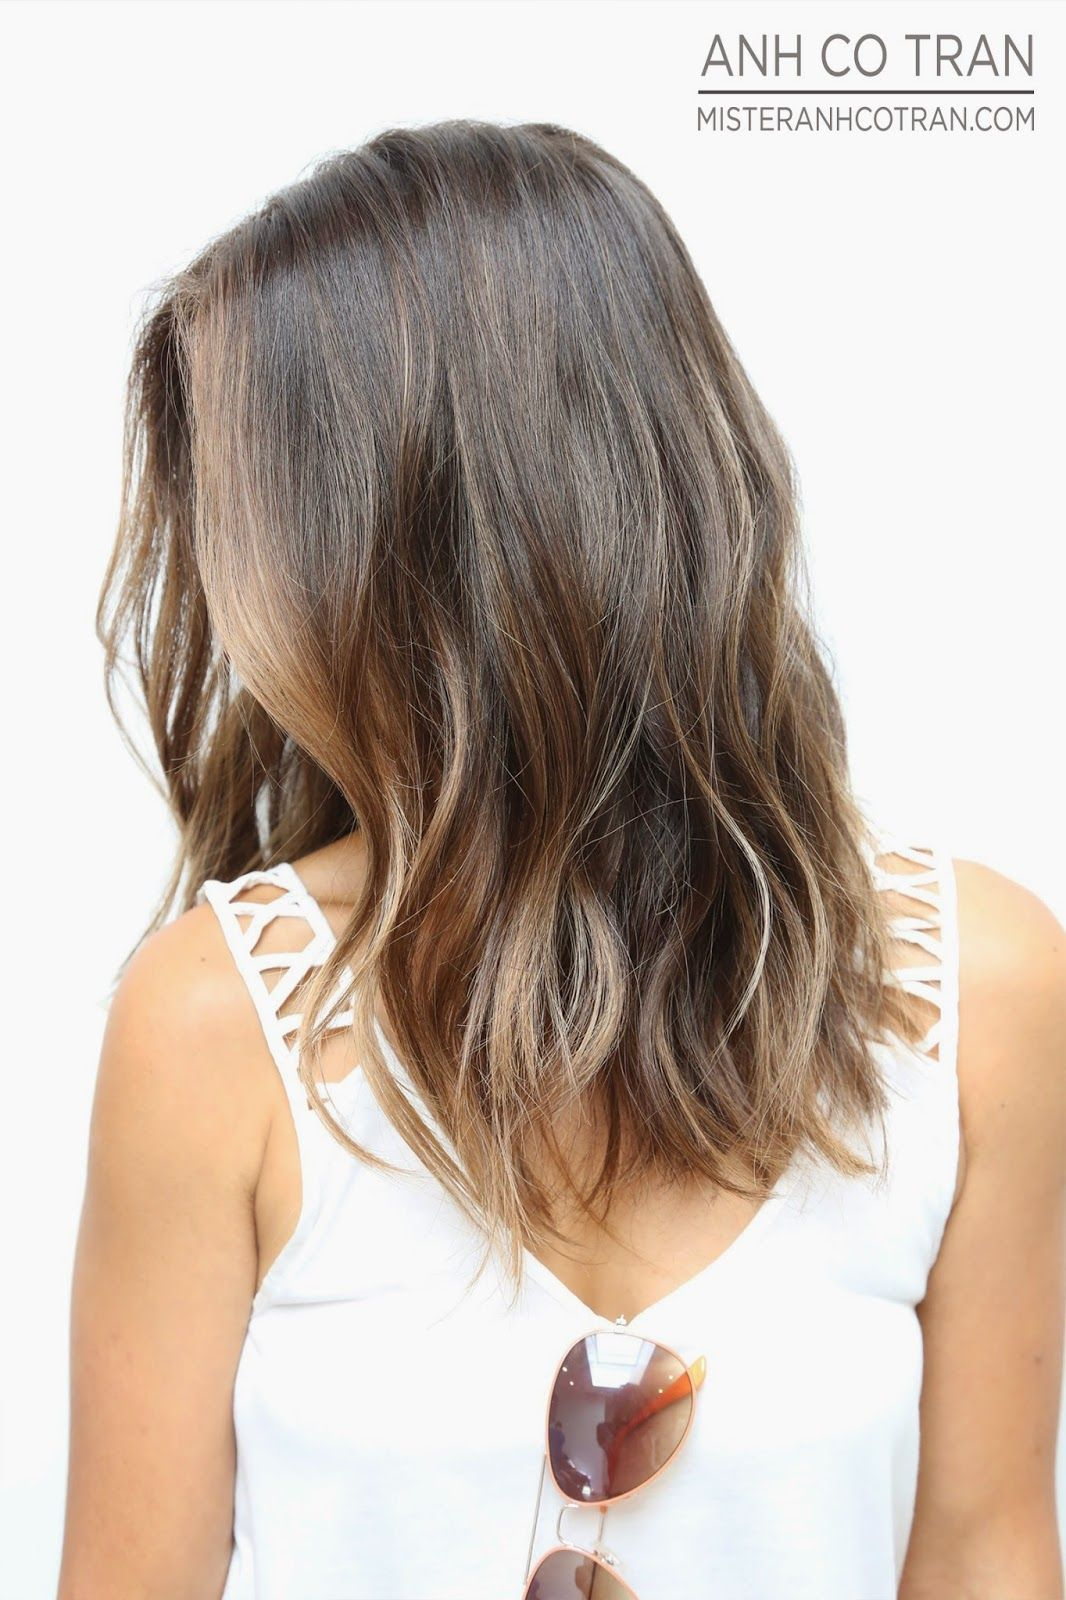 Coiffure Et Couleur Cheveux Mi-long Makeover Monday Cut Style Anh Co Tran Appointment